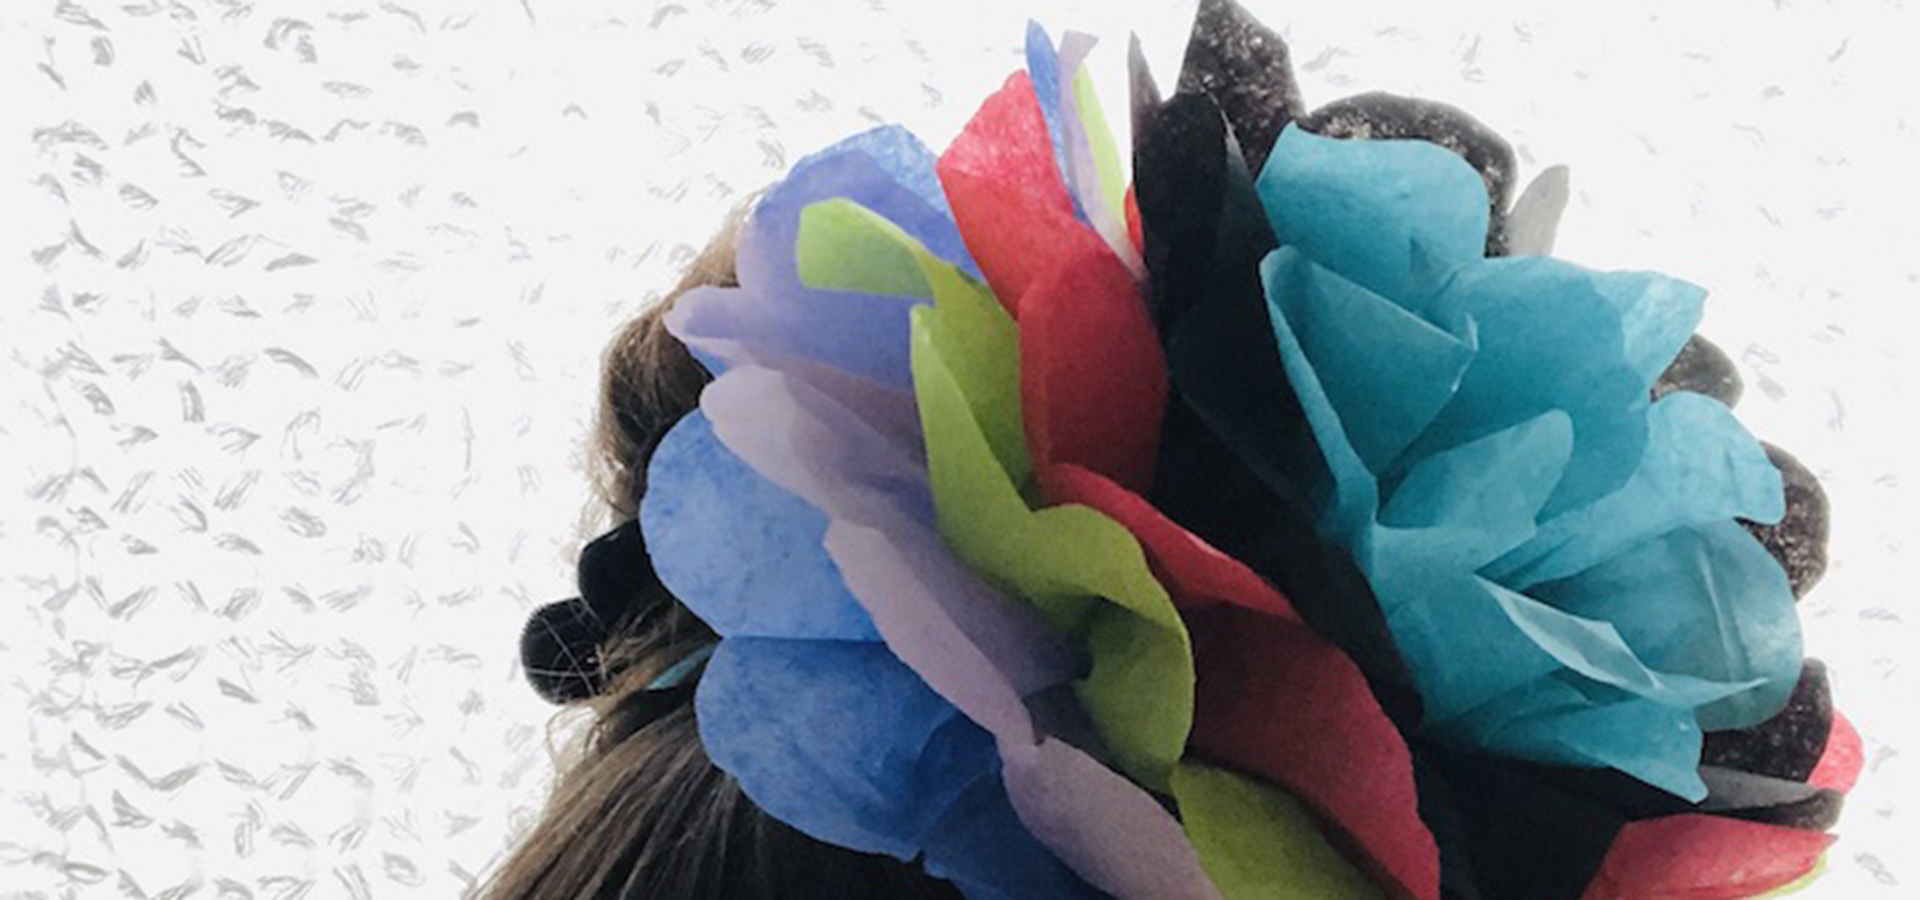 Flower Crown made from color tissue paper close up